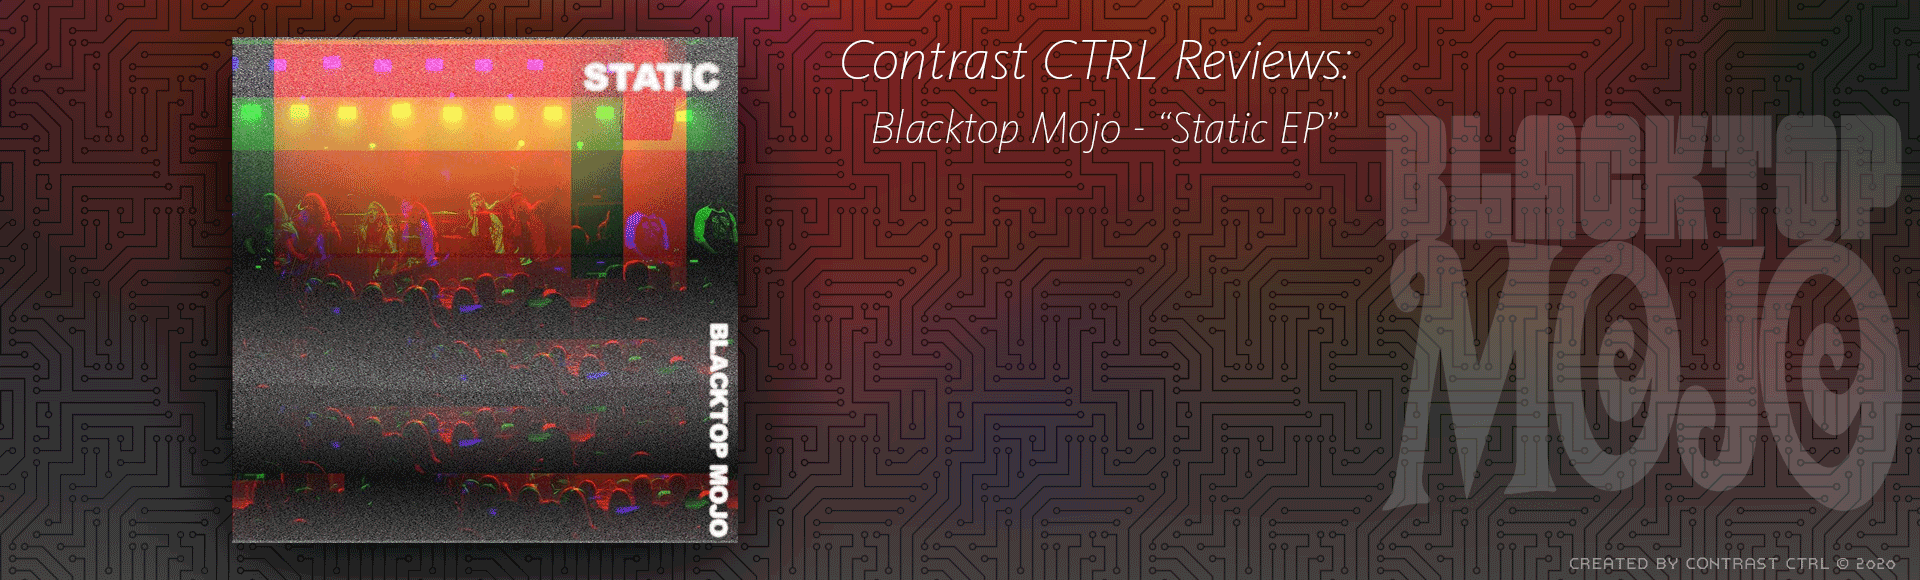 Review: Static EP by Blacktop Mojo